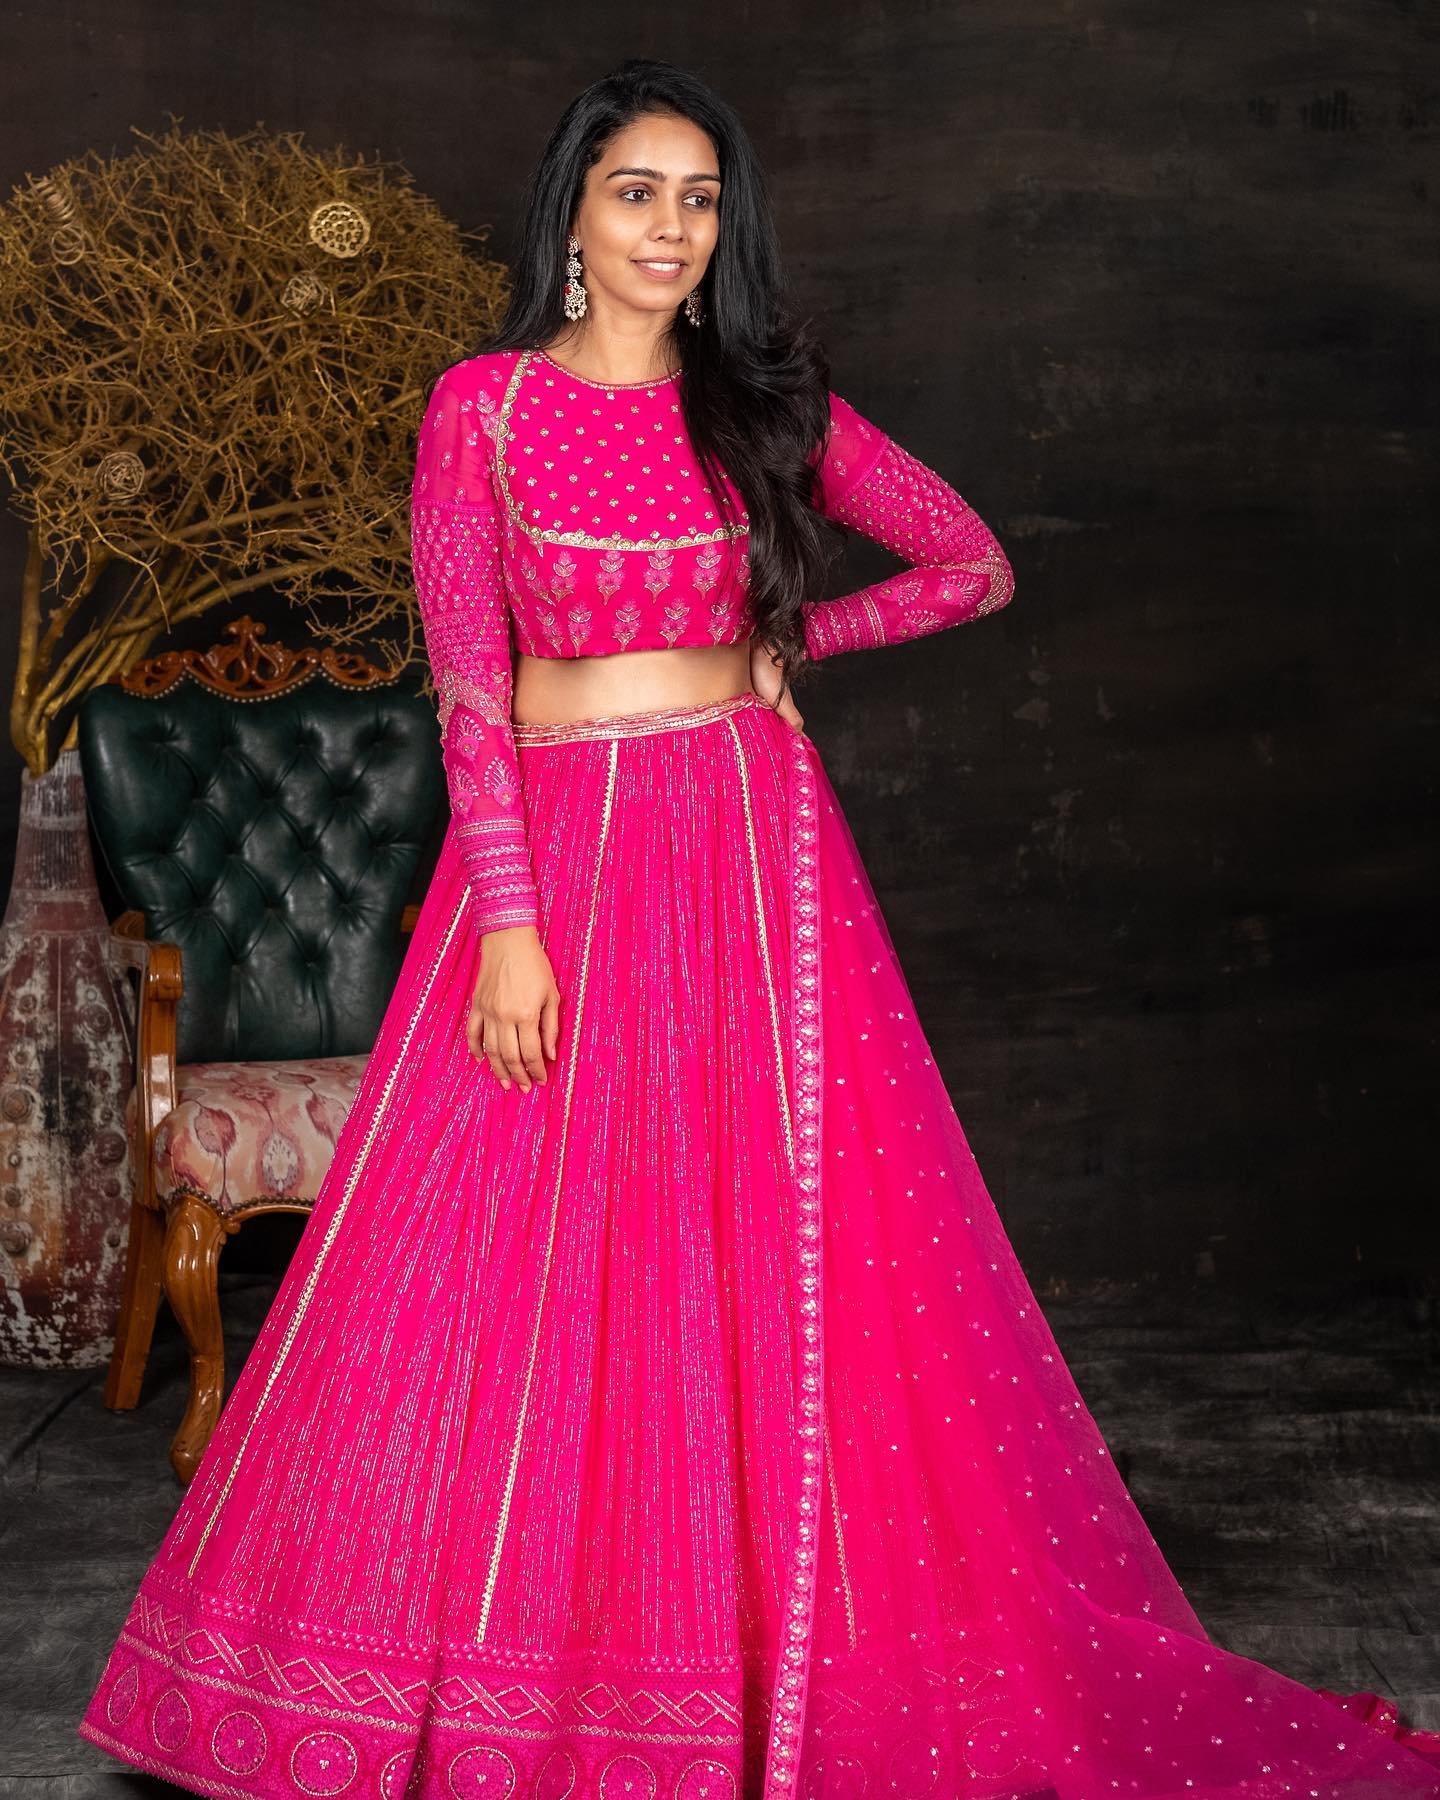 Gorgeous pink color bridal lehenga and blouse with classy hand embroidery sequin work.  2021-07-13